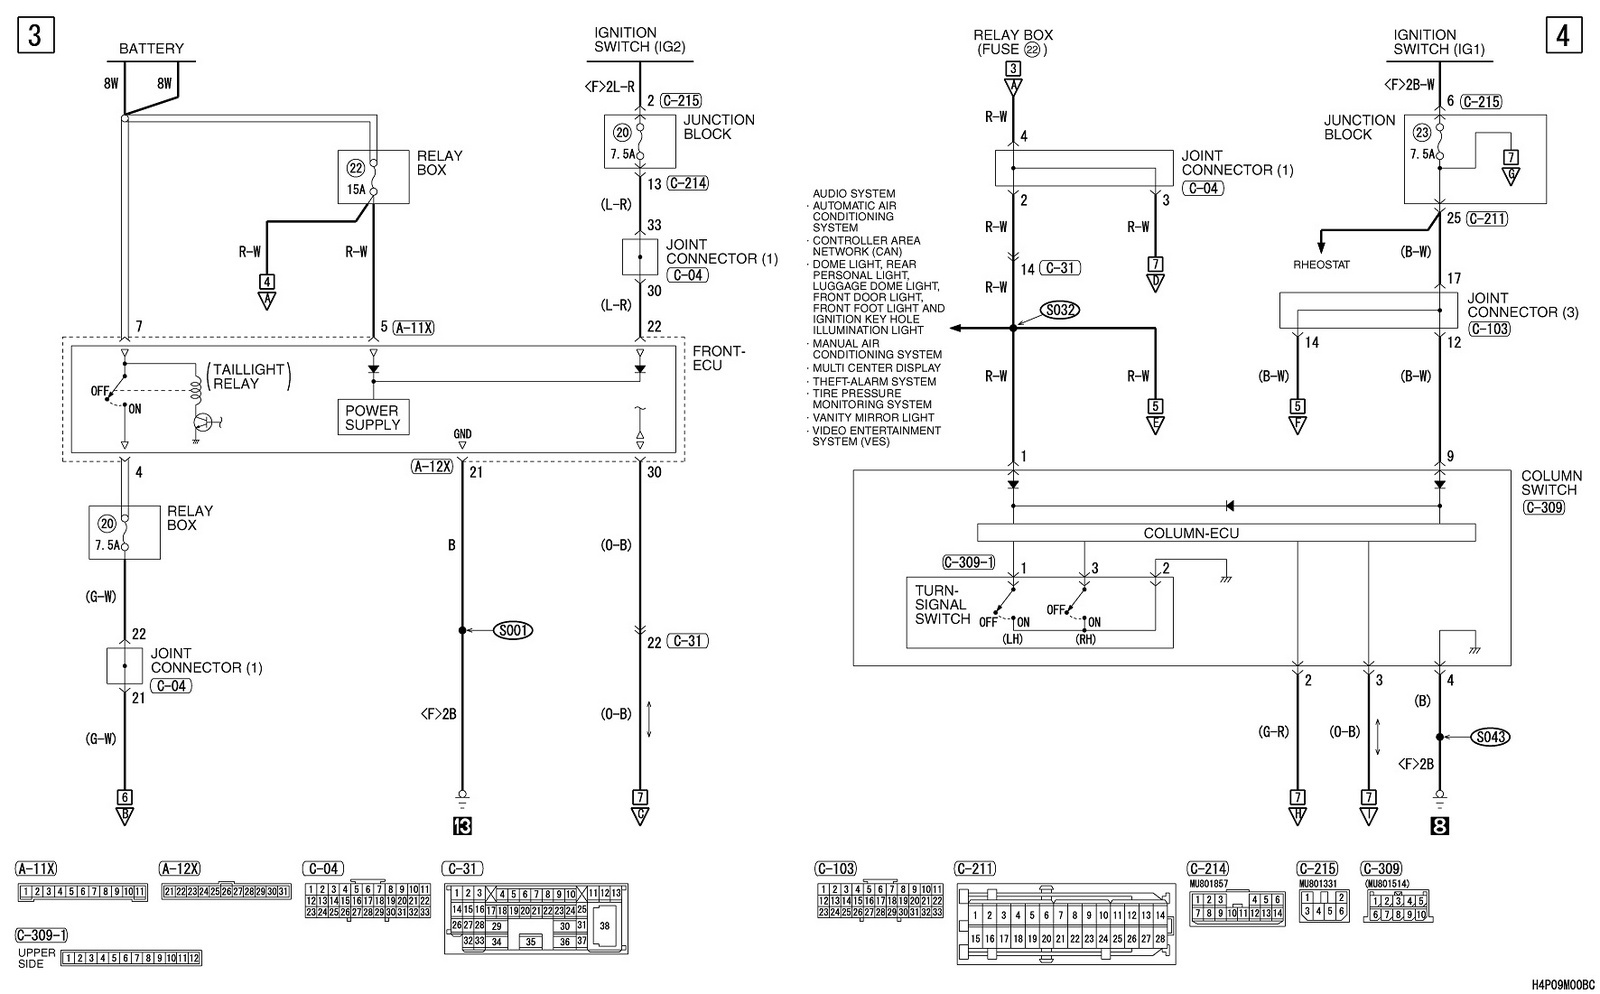 [ZTBE_9966]  Mitsubishi Outlander Sport 2015 Wiring Diagram Diagram Base Website Wiring  Diagram - ALIGNMENTDIAGRAMS.INNOZ-TRACKS.DE | 2015 Mitsubishi Outlander Wiring Diagram |  | Diagram Database Site Full Edition - innoz-tracks